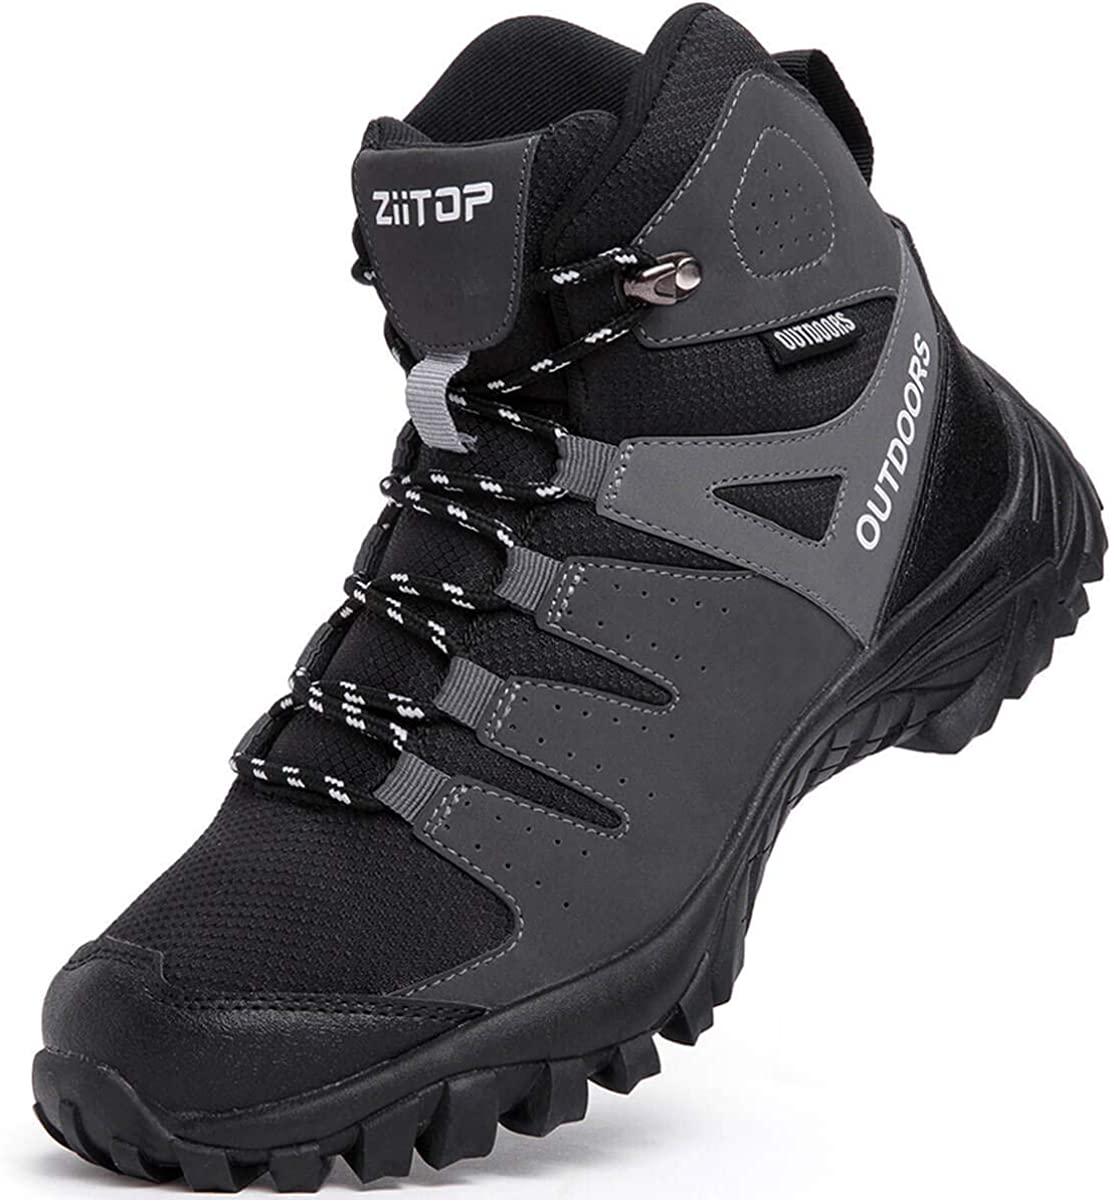 Traction Grip Outdoors Hiker Boot